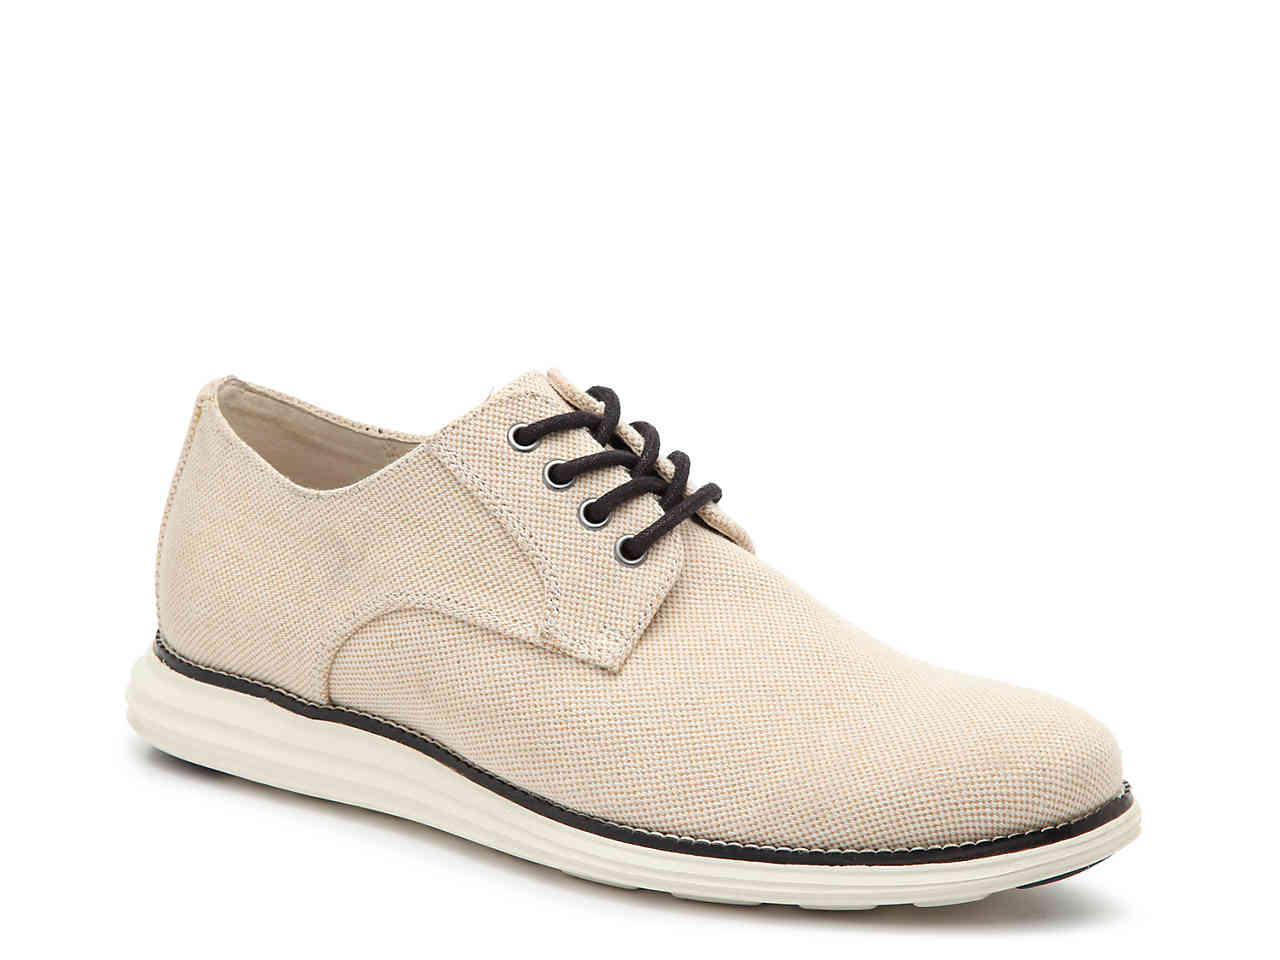 ORIGINAL GRAND PLAIN OXFORD